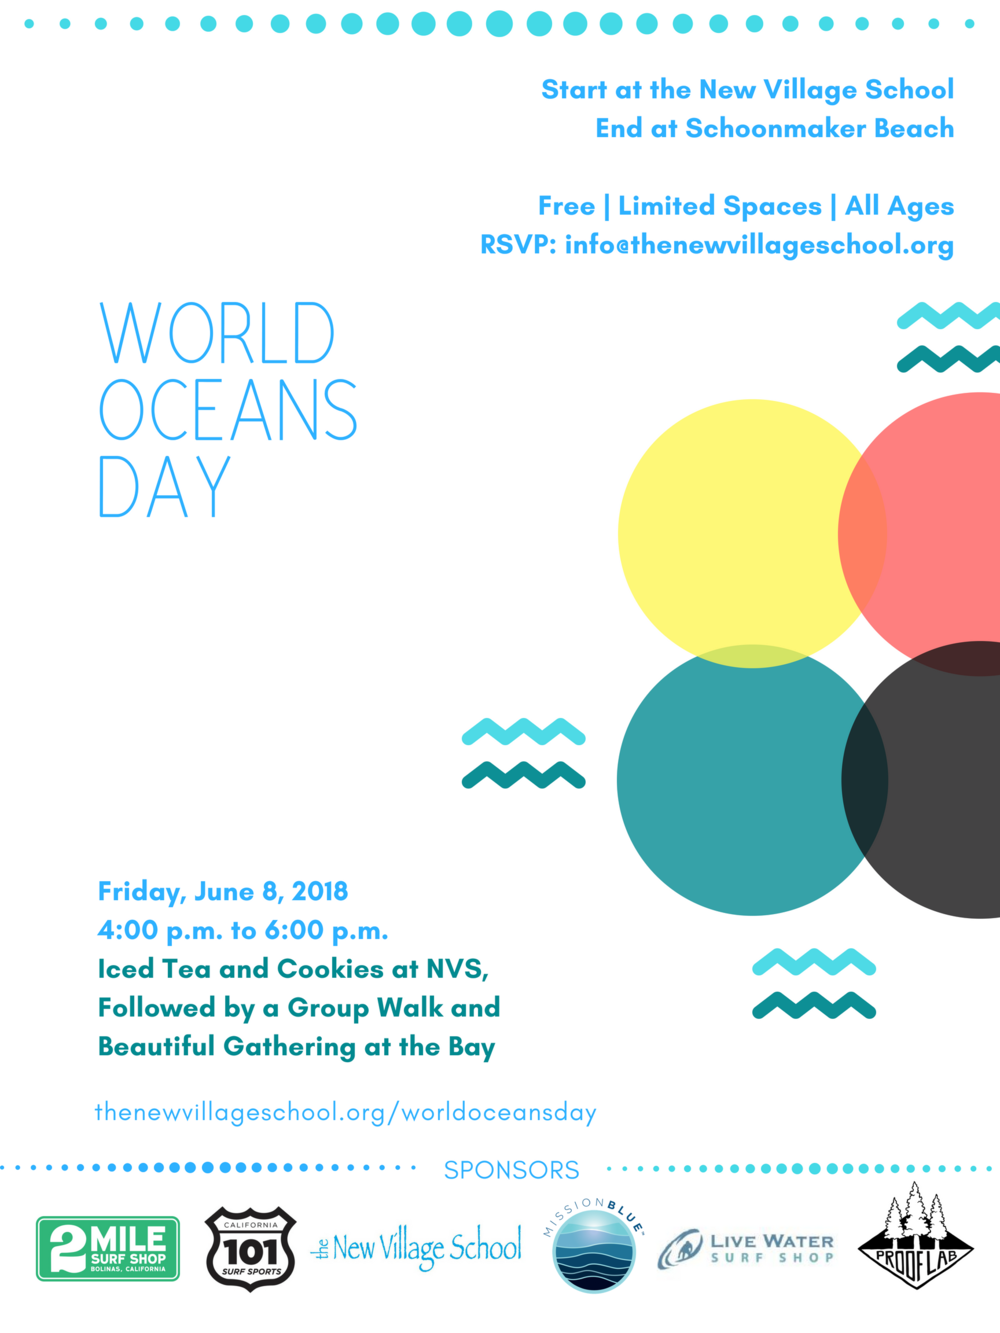 WORLD OCEANS DAY FIN FIN FIN FIN.png